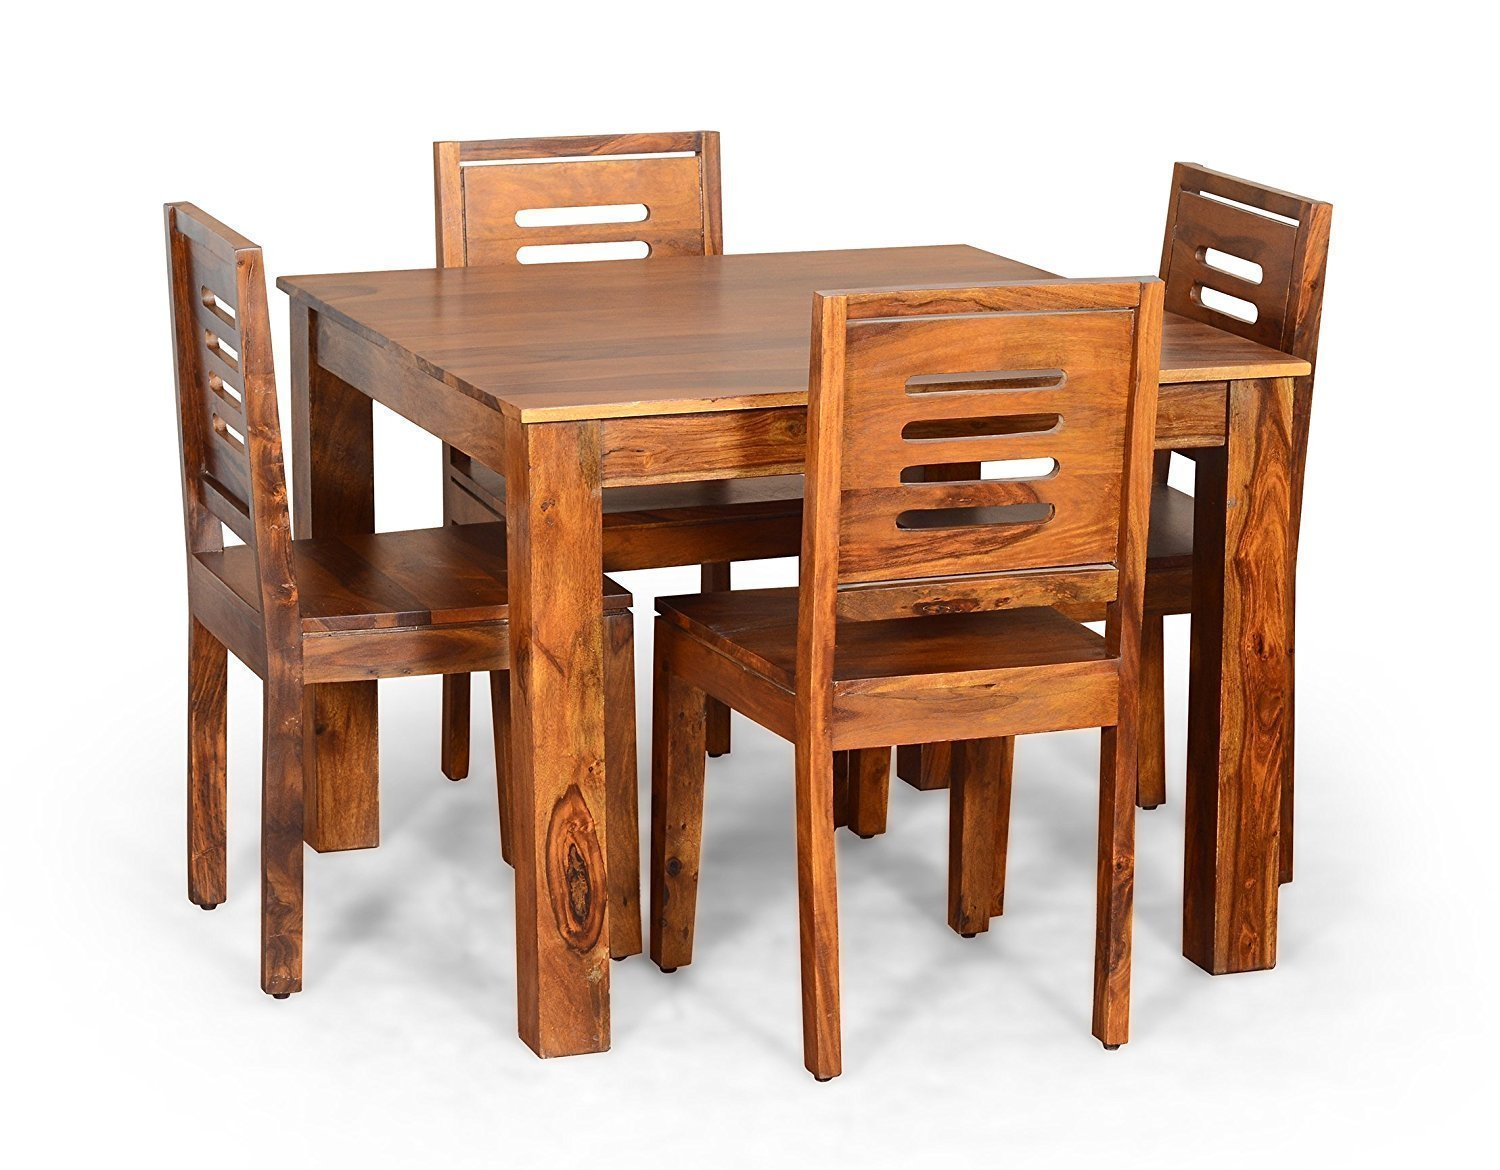 Mp enterprises sheesham wood dining table with 4 chairs in teak finish for living room amazon in home kitchen